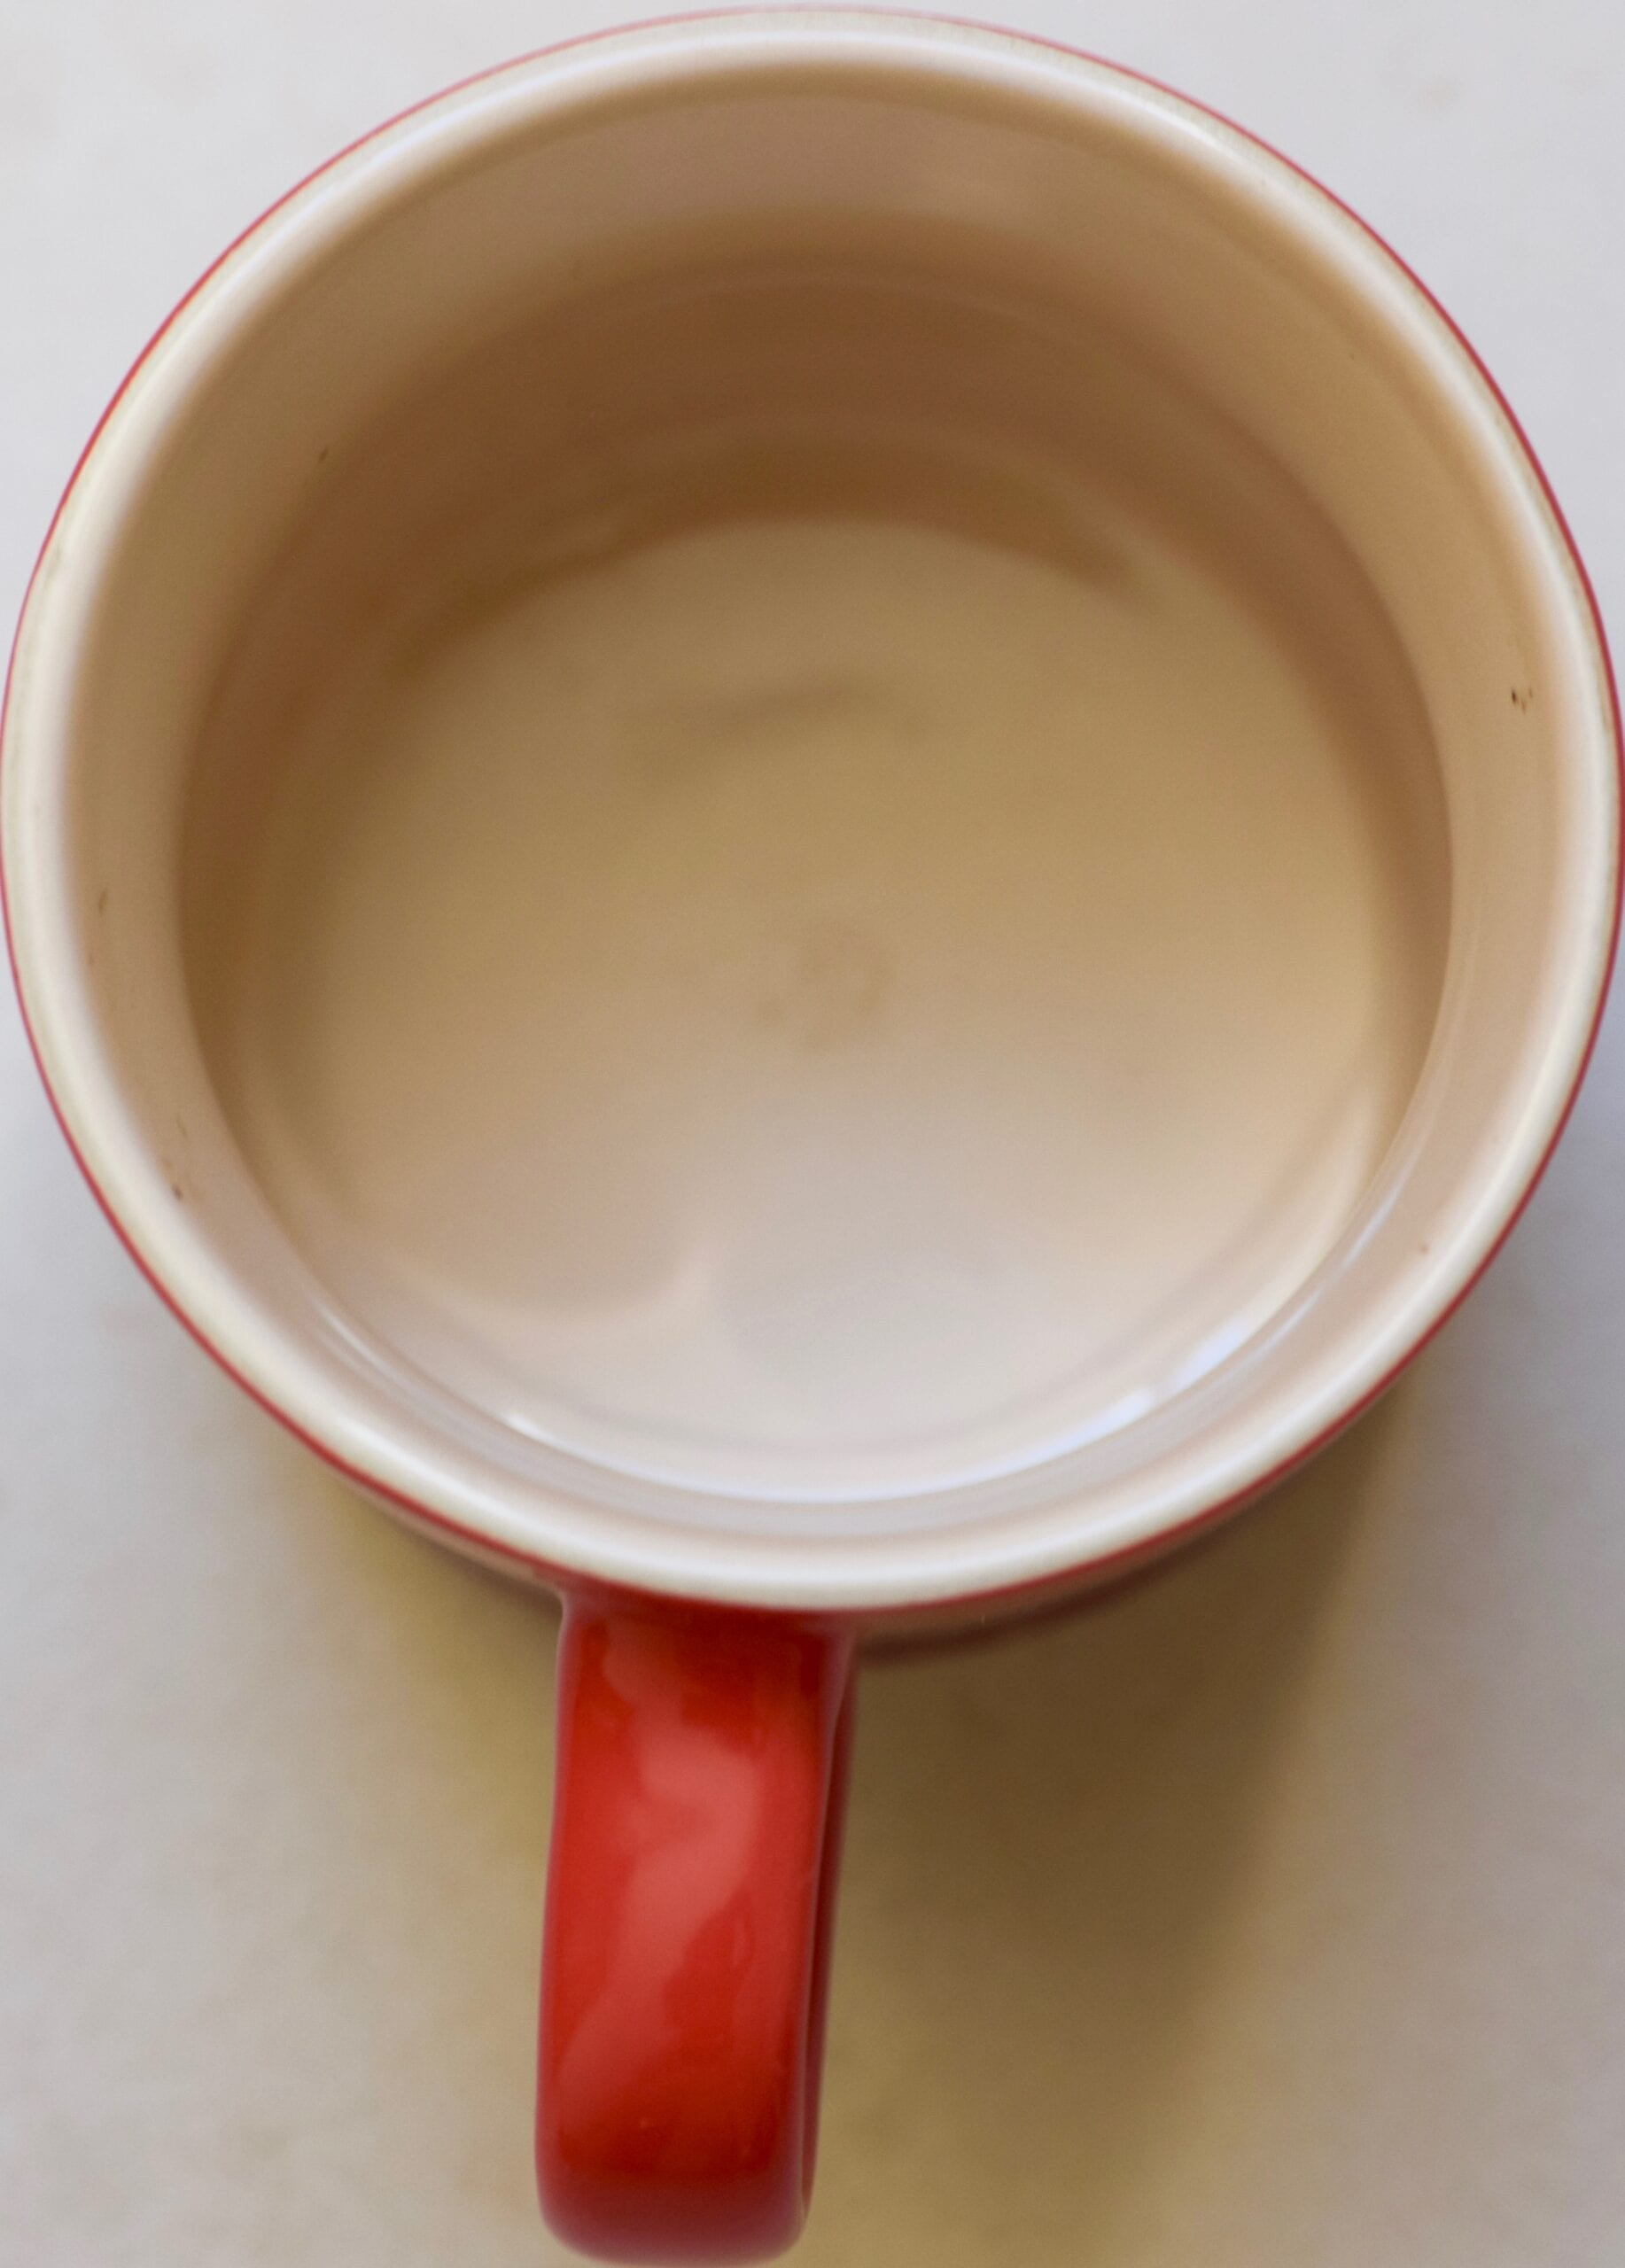 Greased mug with oil spray